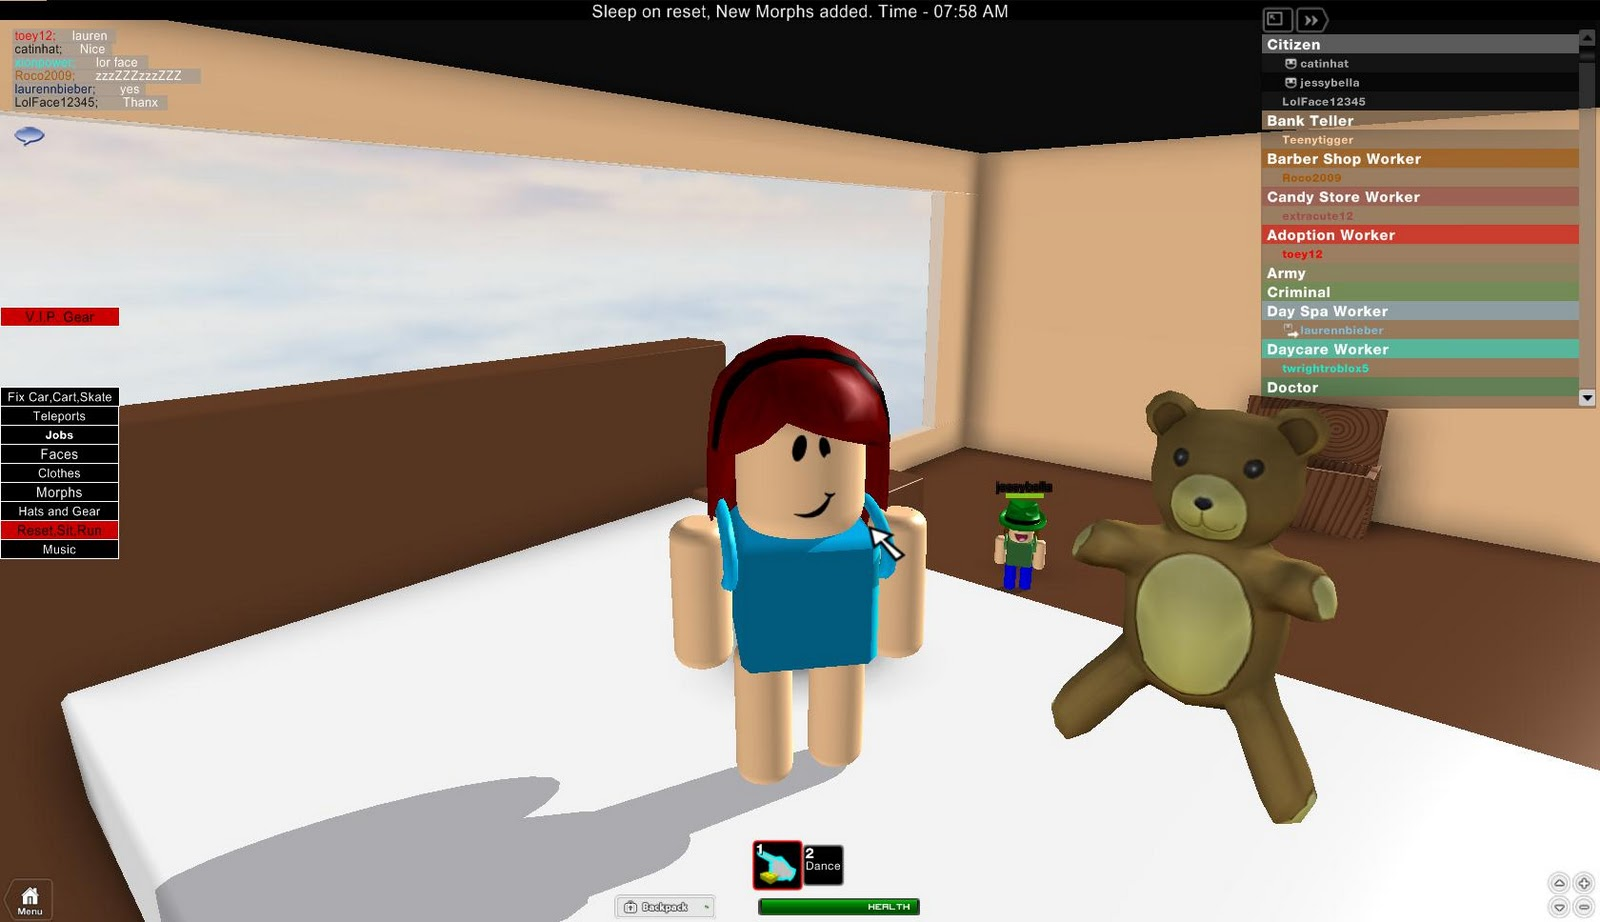 how to make roblox shirt without builders club